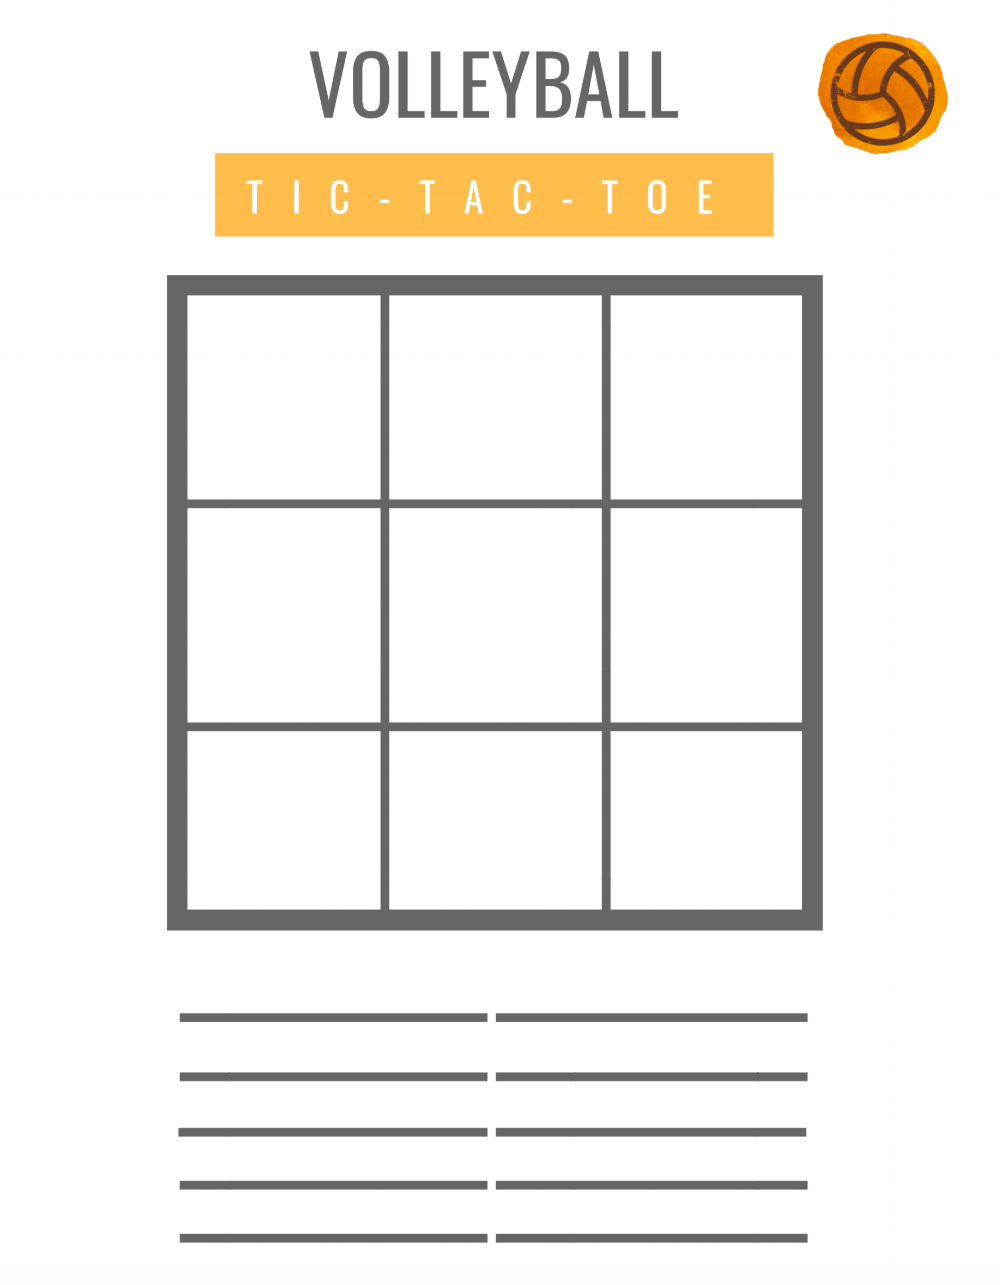 Tic-Tac-Toe | A FREEVolleyball Goals Worksheet - Watch the video to learn how to use this FREE volleyball goal setting worksheet at your next practice or tournament!